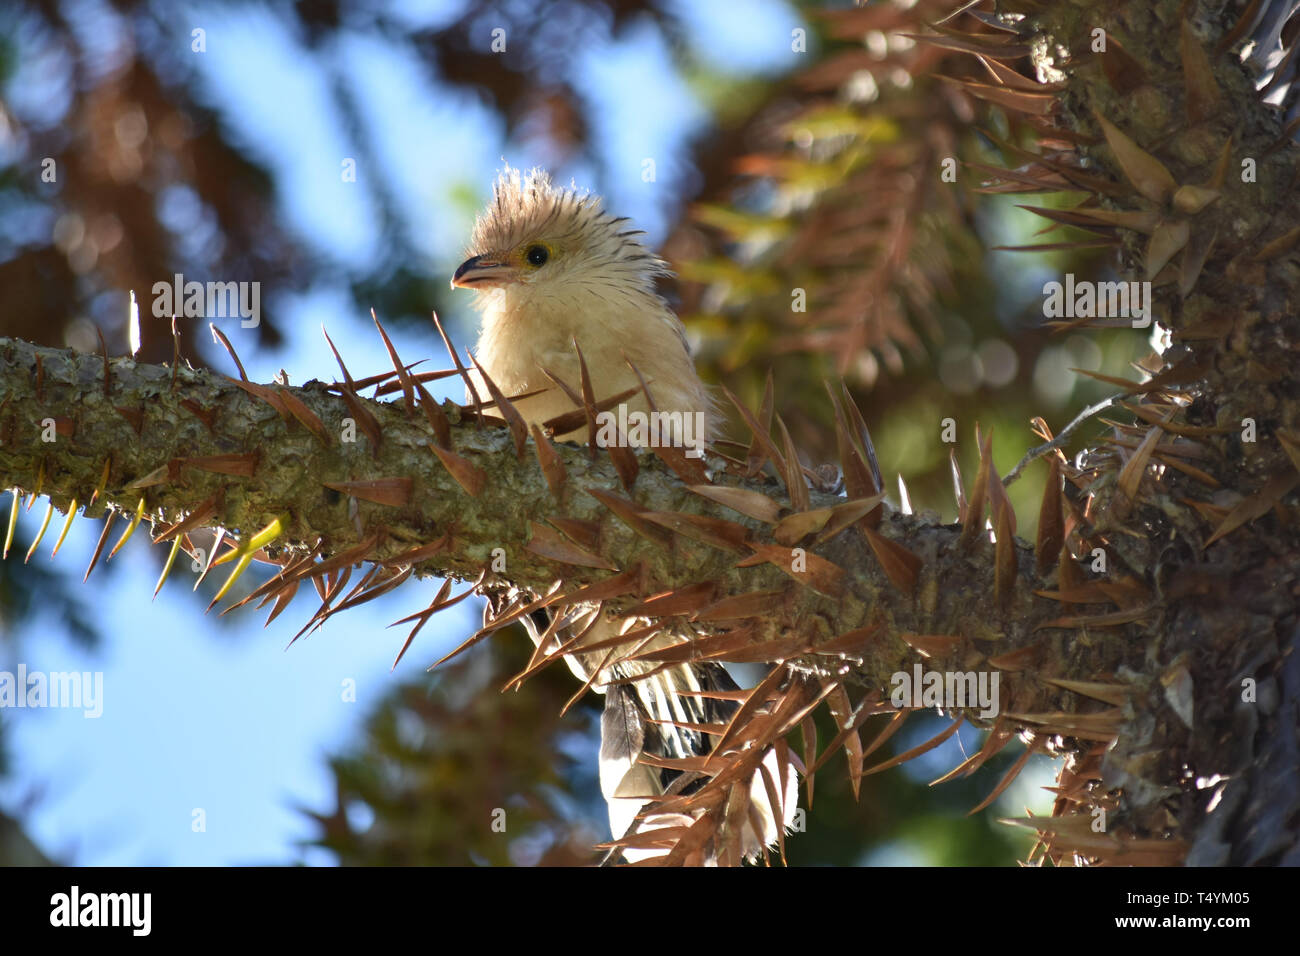 Baby Guira Cuckoo (Guira Guira) sitting on a branch - Stock Image